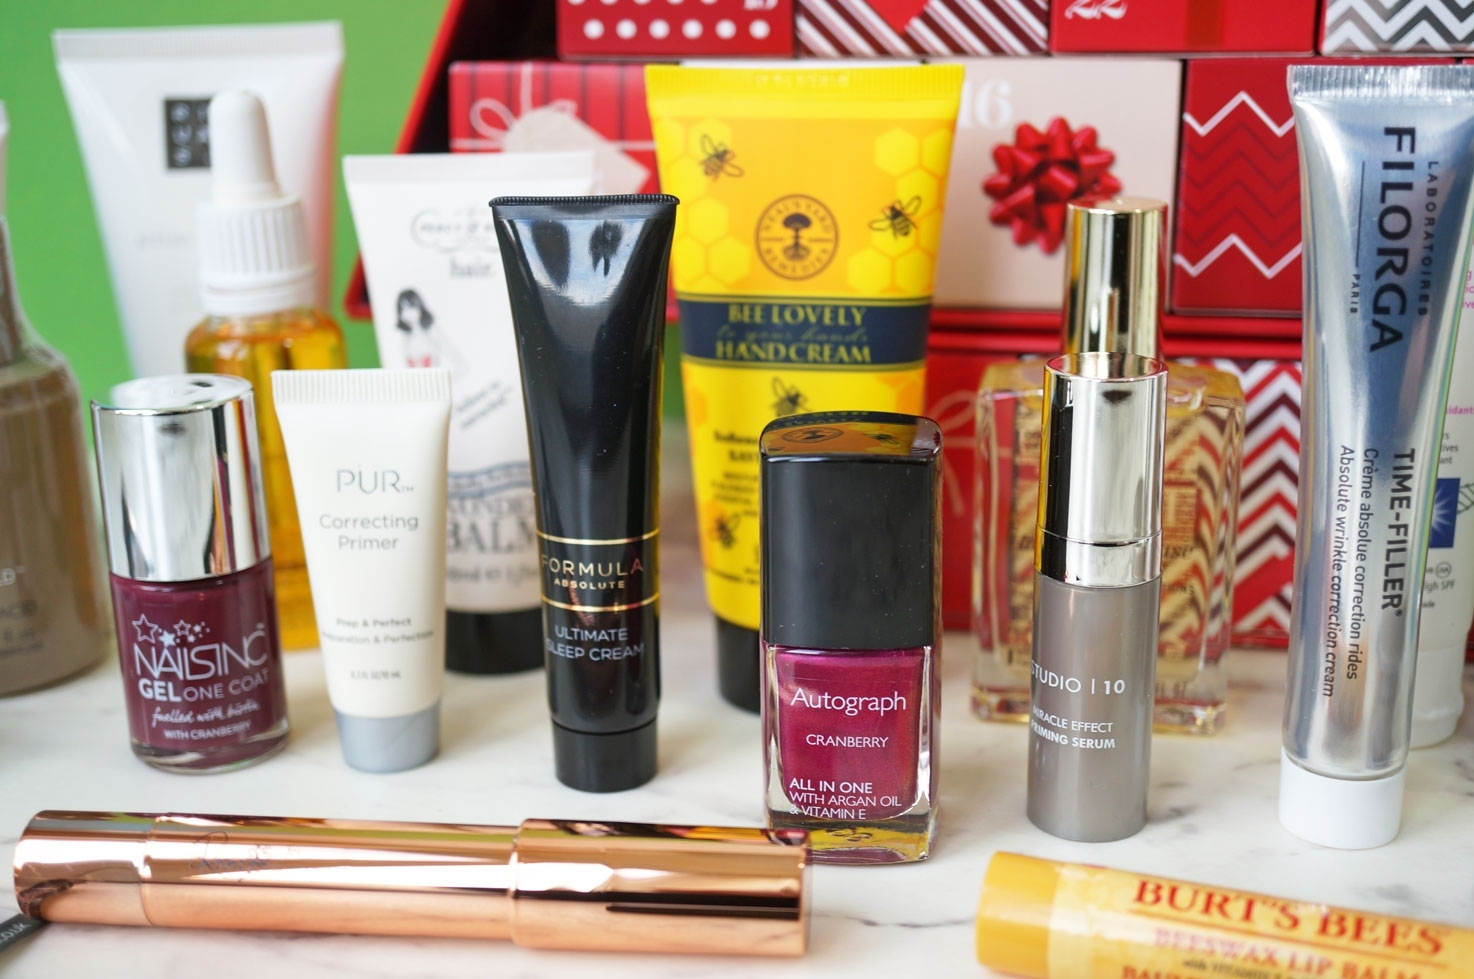 M&S Beauty Advent Calendar 2016 – Spoiler!